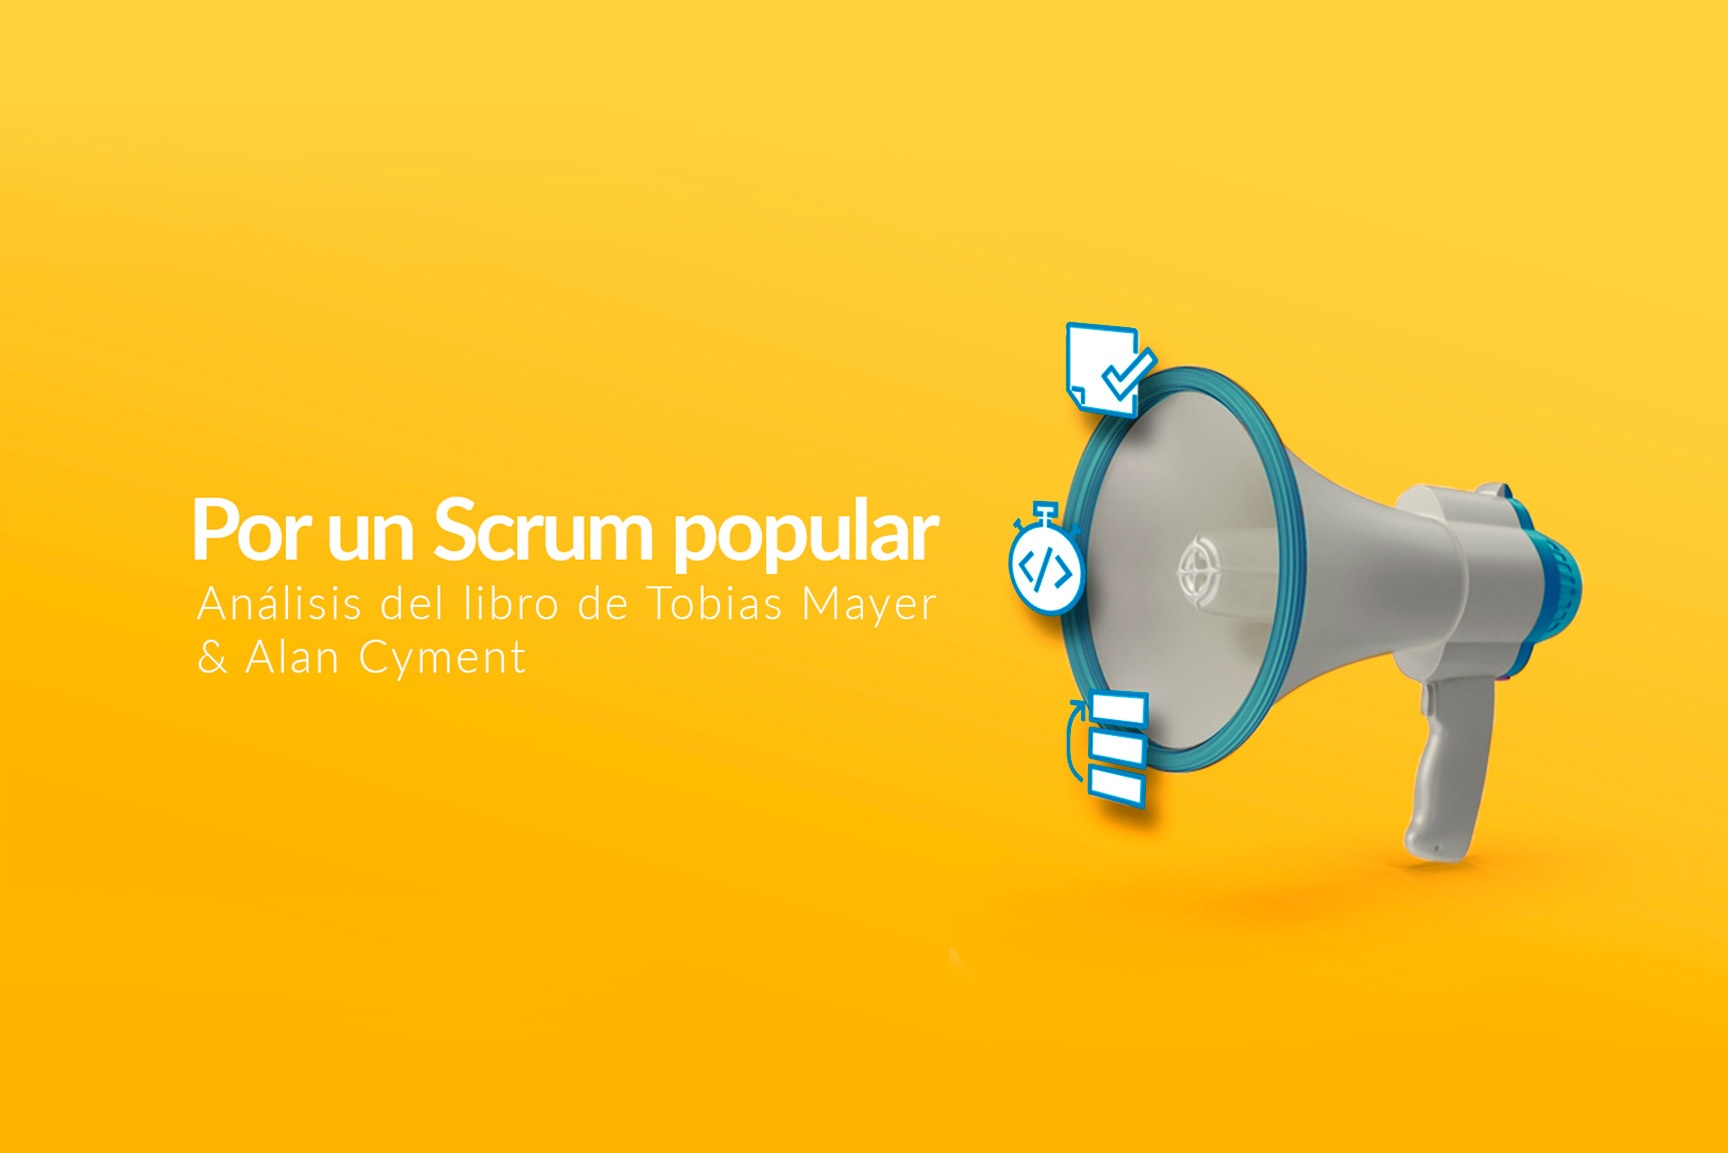 h_por_un_scrum_popular_por_un_mundo_mejor.jpg